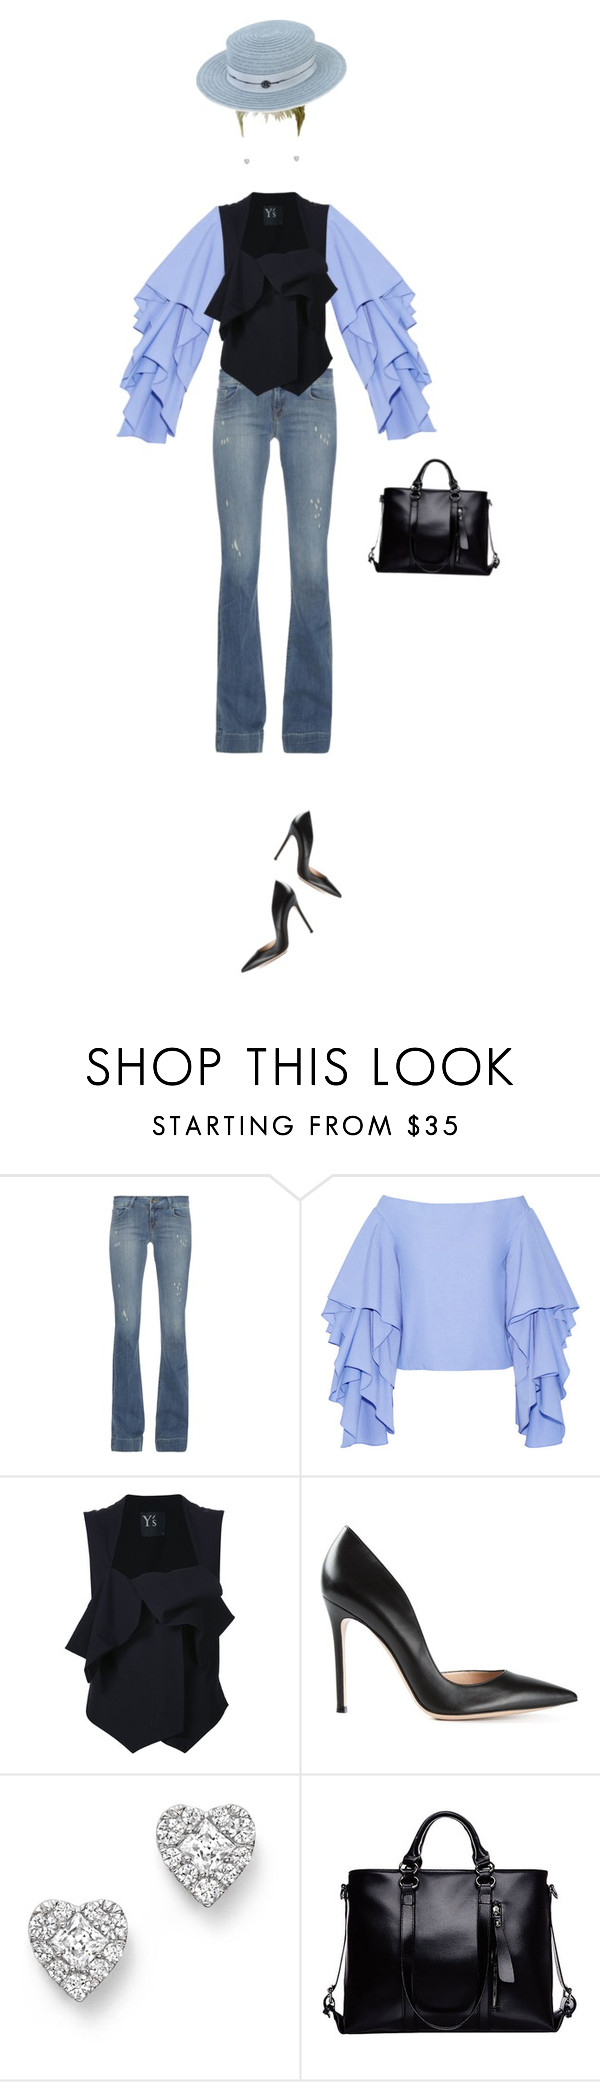 """""""suchan:241"""" by suchan ❤ liked on Polyvore featuring J Brand, Rosie Assoulin, Y's by Yohji Yamamoto, Gianvito Rossi, Bloomingdale's, Maison Michel and hats"""